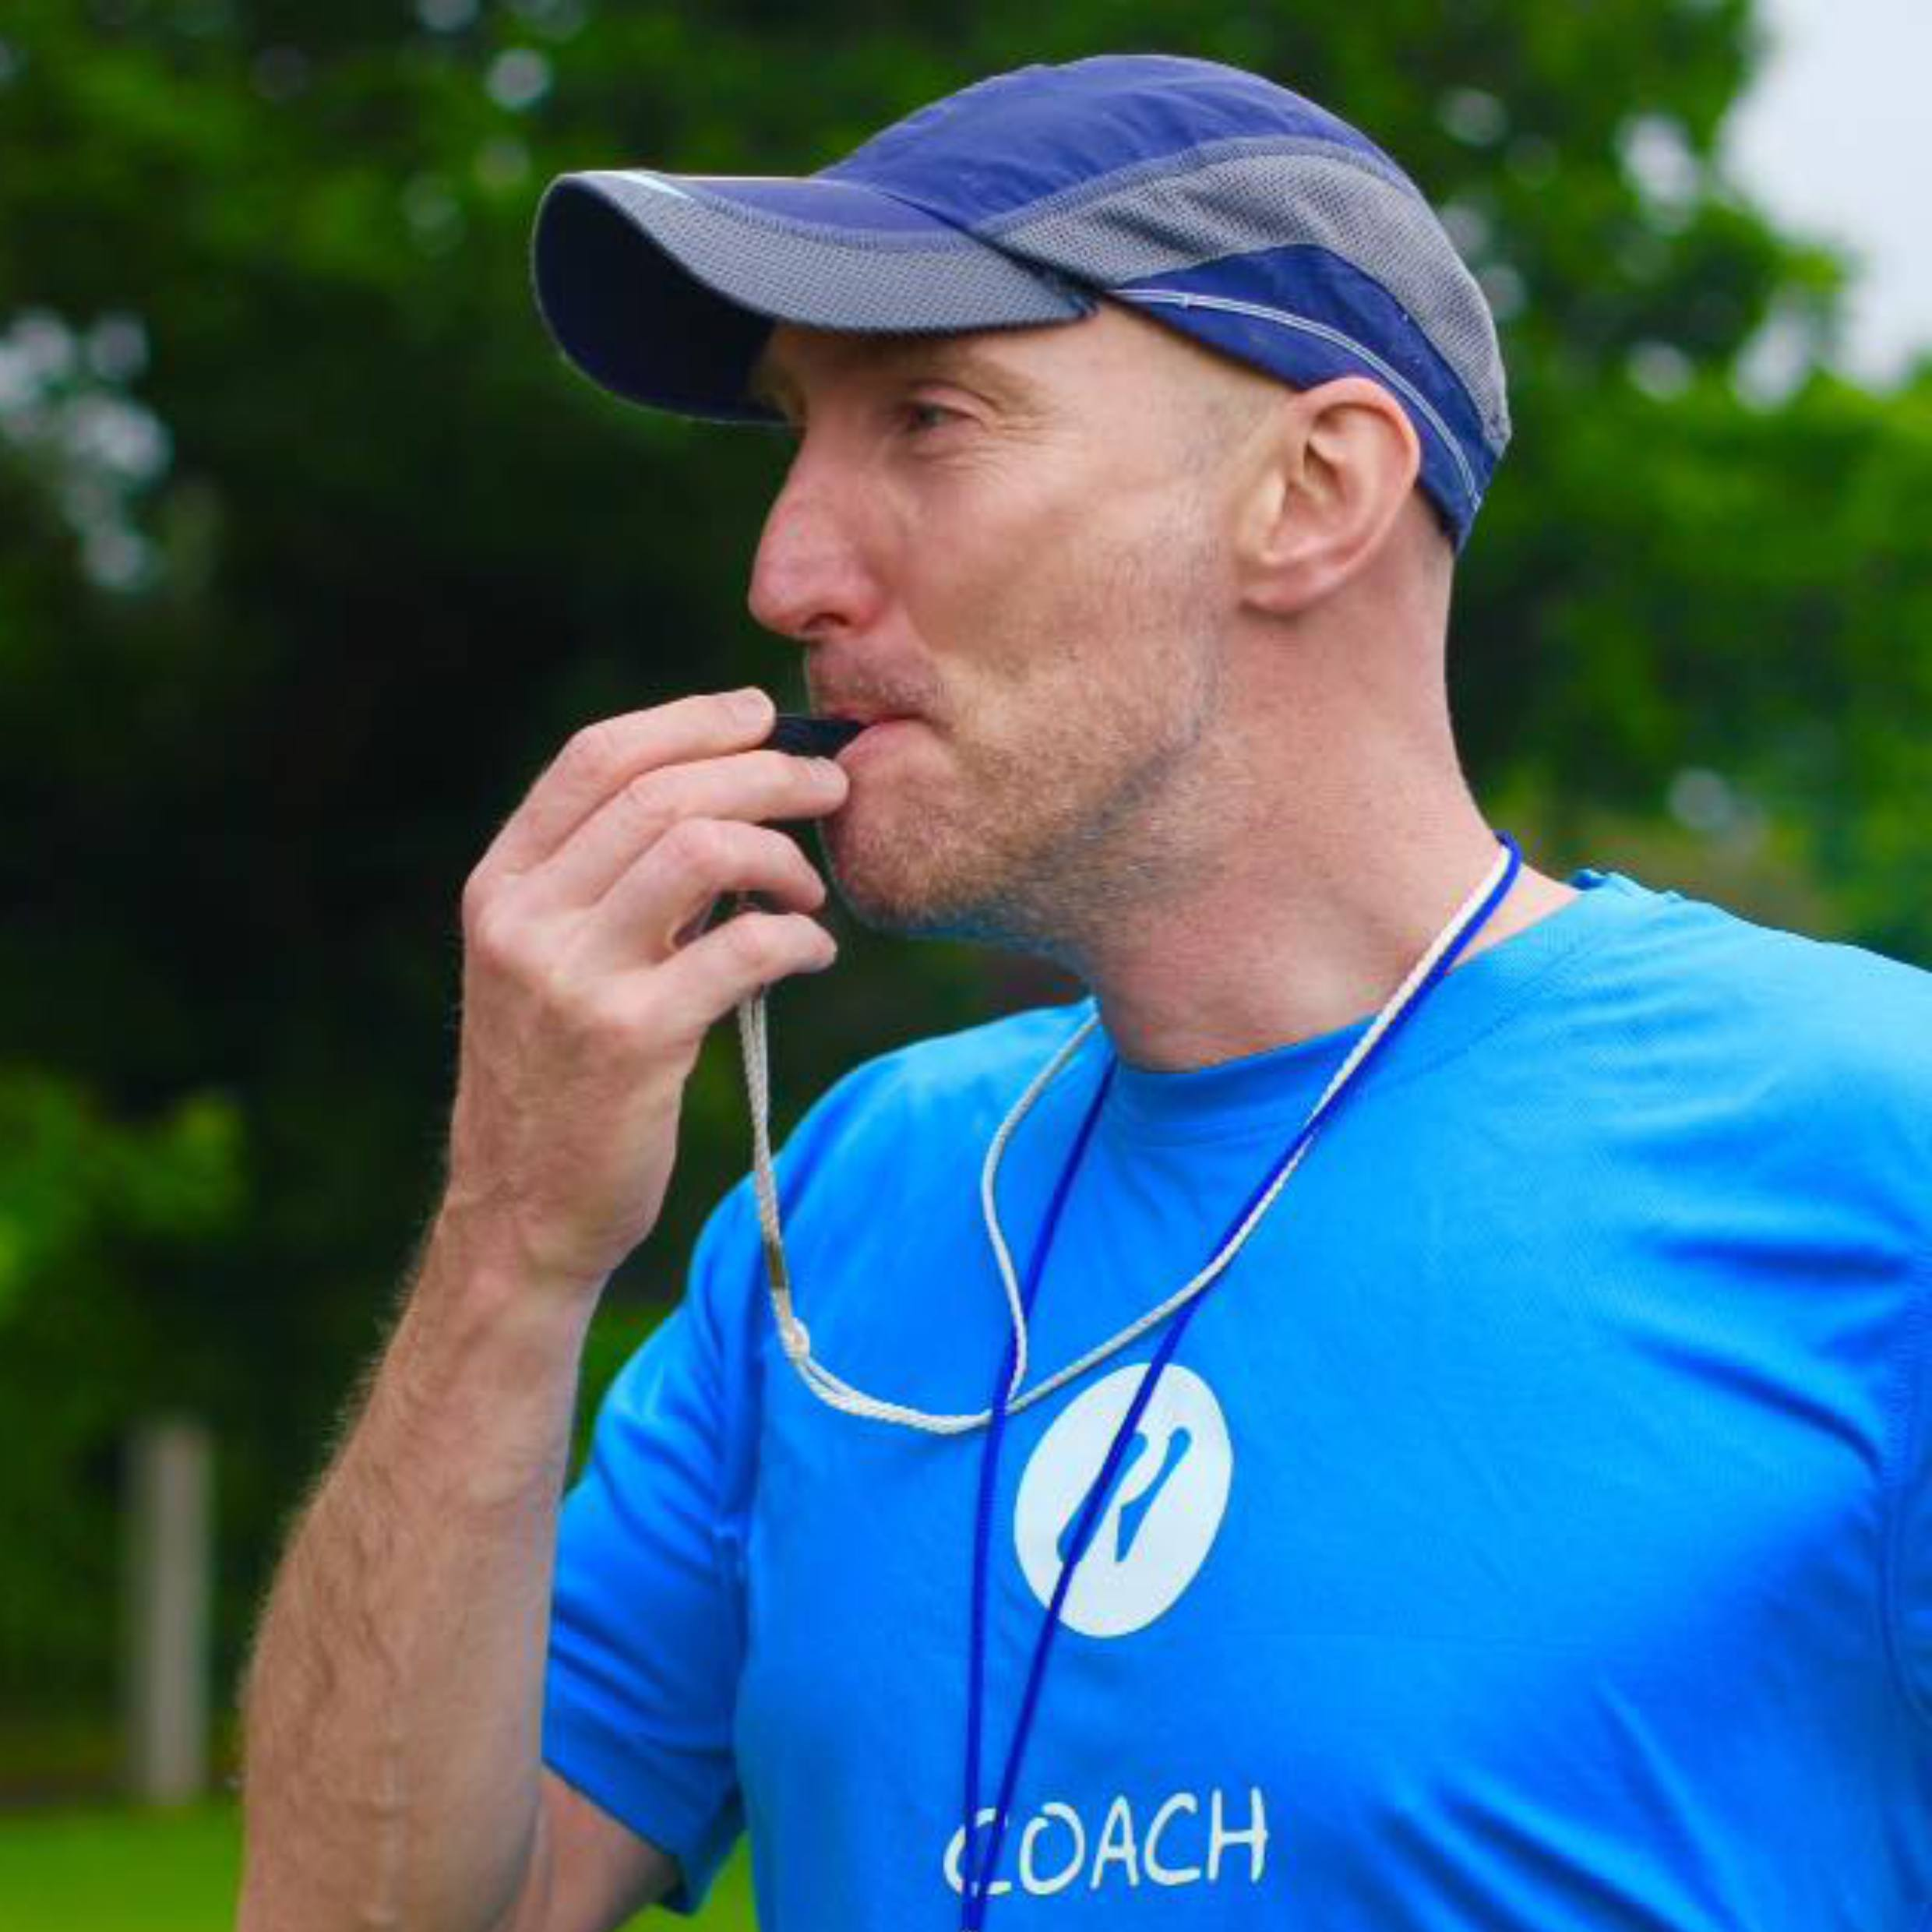 Coach D founder of Running Directions